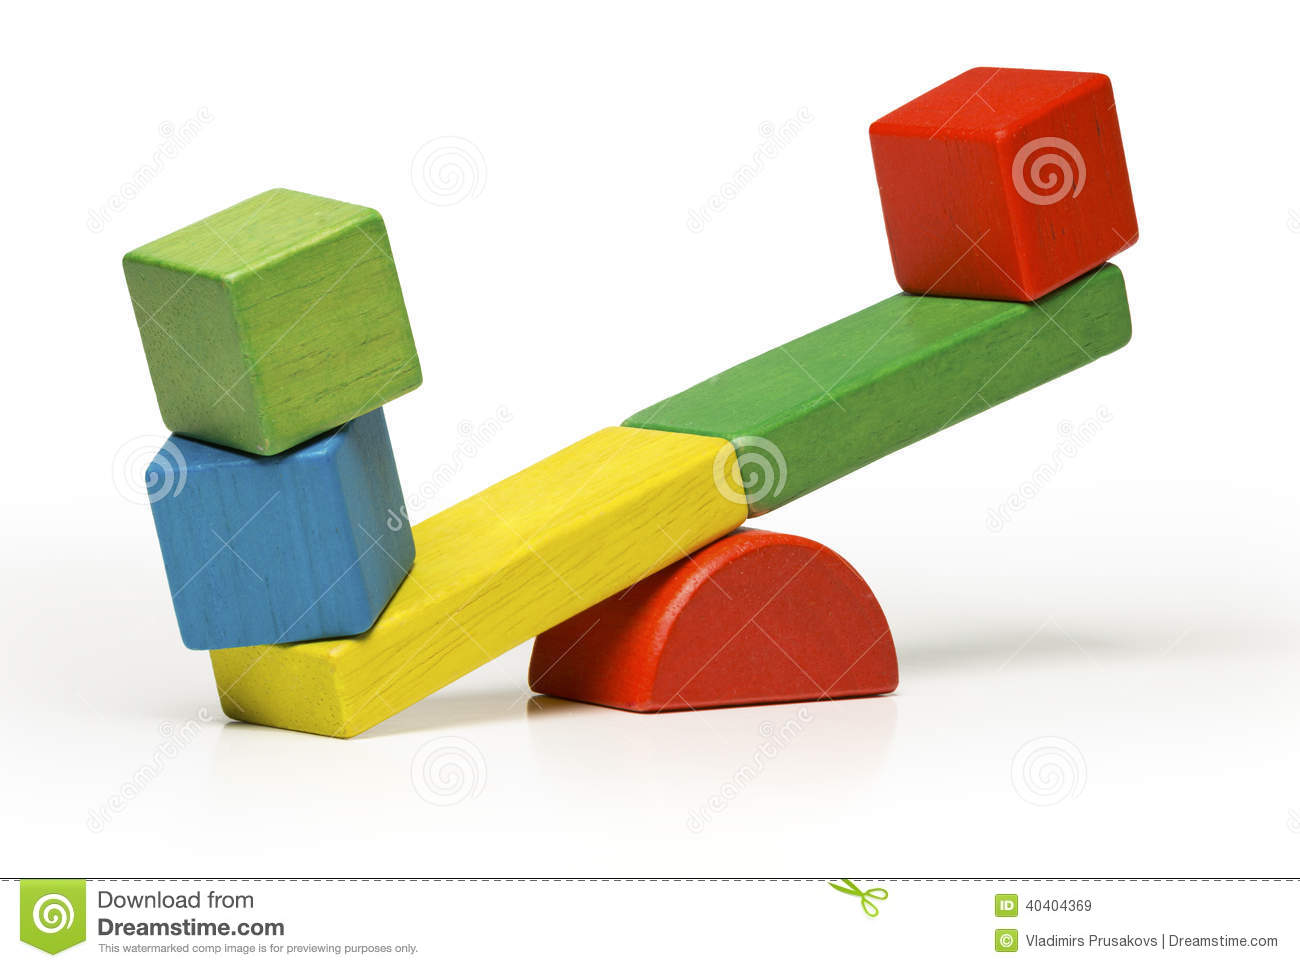 Headboard Plans further Royalty Free Stock Images Toys Seesaw Wooden ...